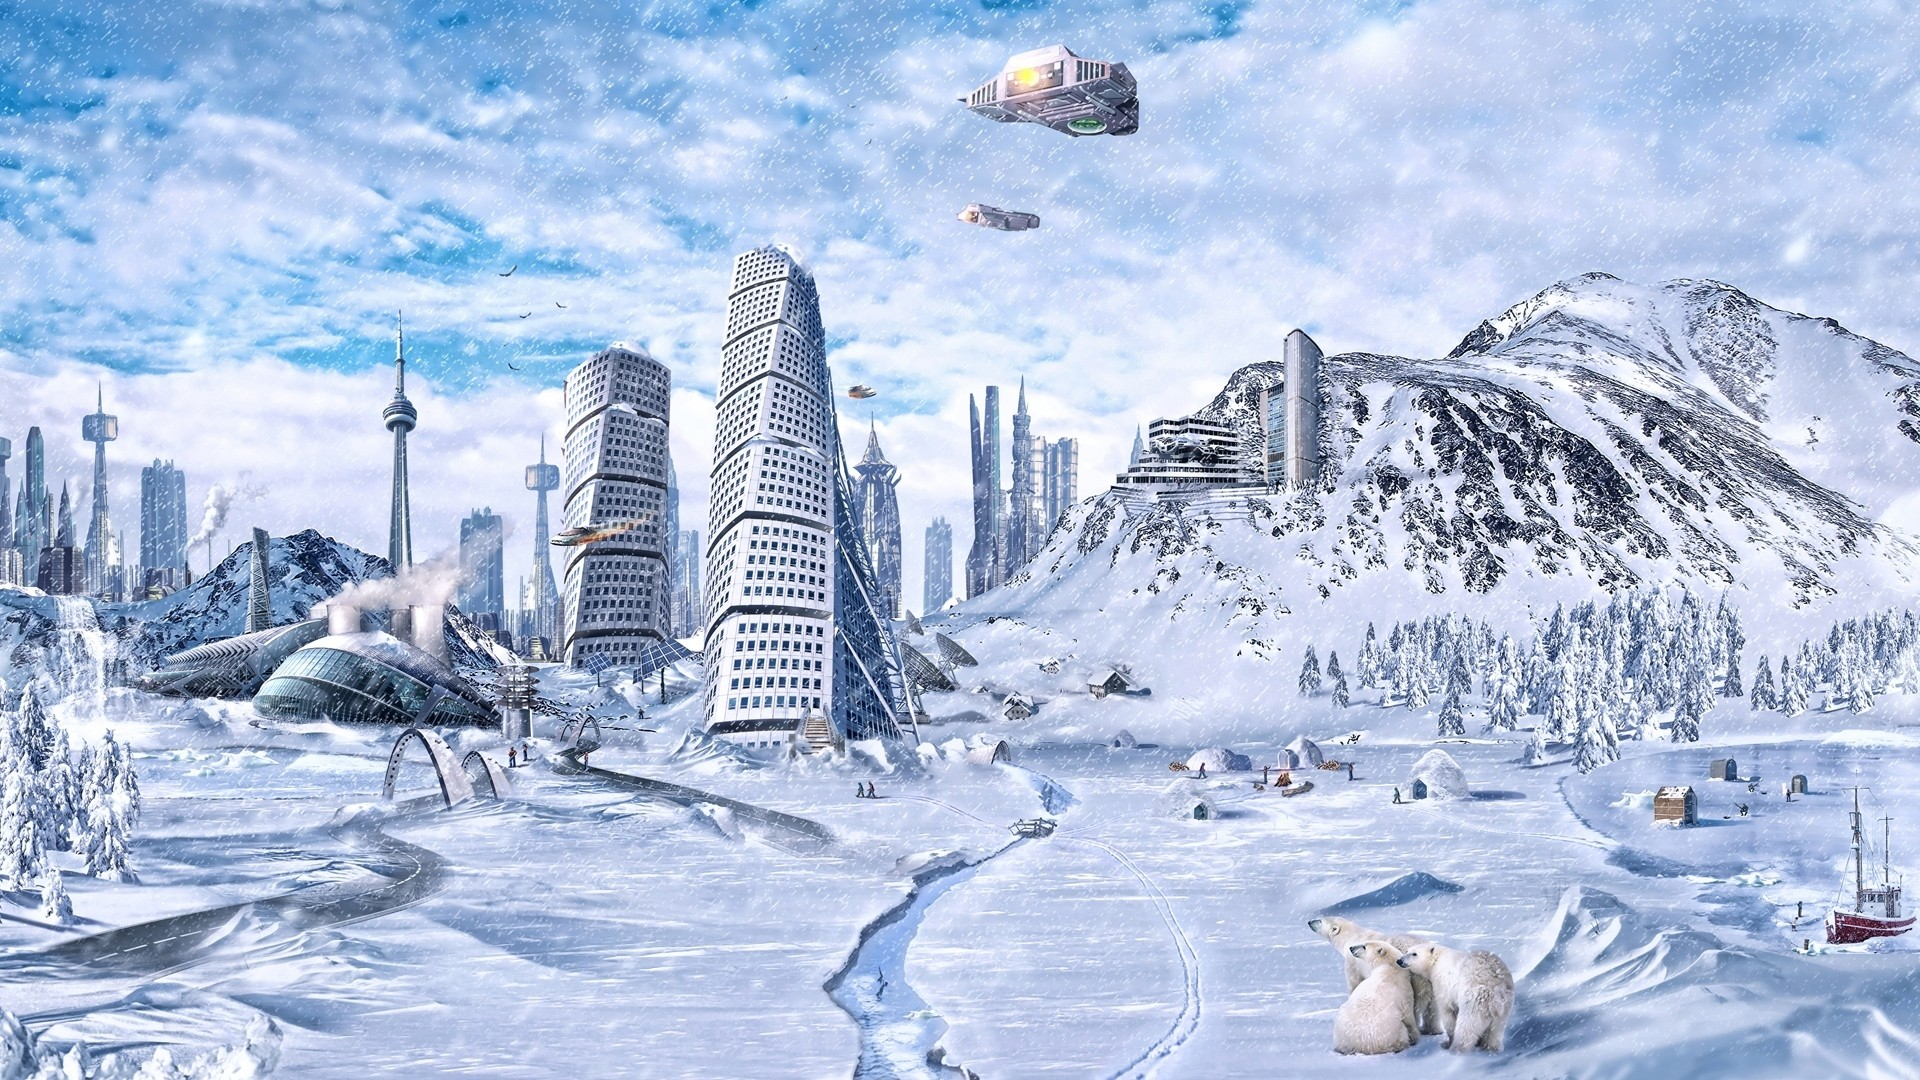 Preview wallpaper planet, world, winter, snow, city, science fiction, future